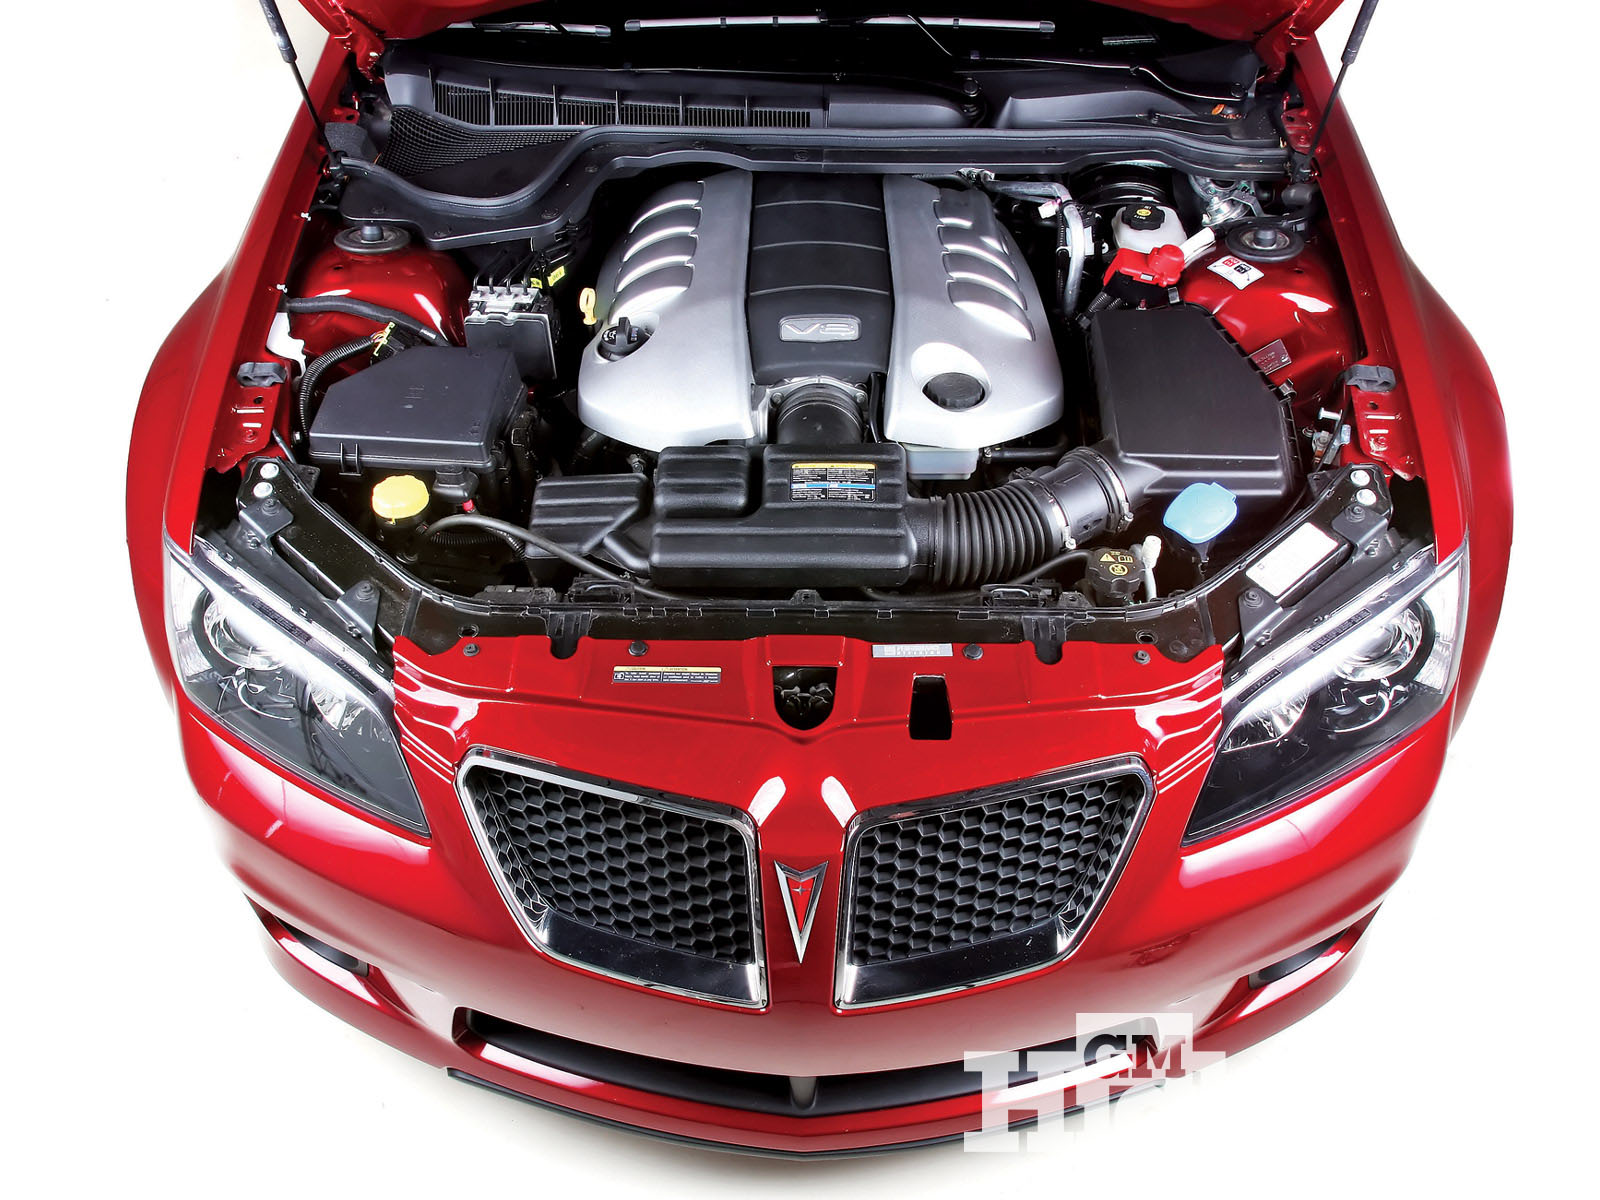 engine muscle diesel petrol showdown engines stroke between which four around difference famous